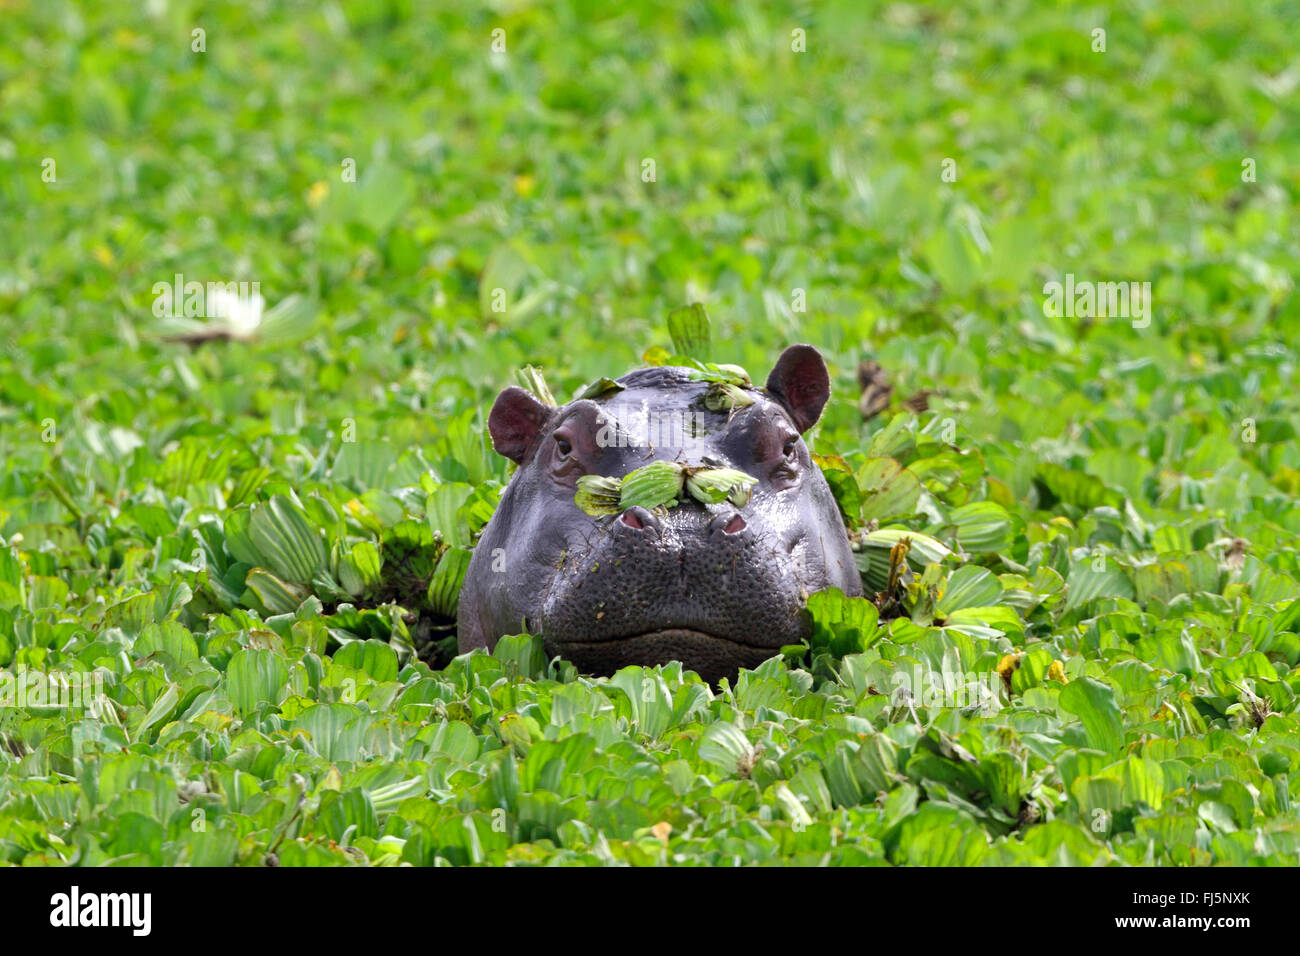 hippopotamus, hippo, Common hippopotamus (Hippopotamus amphibius), looking out water cabbages, portrait, Kenya, - Stock Image